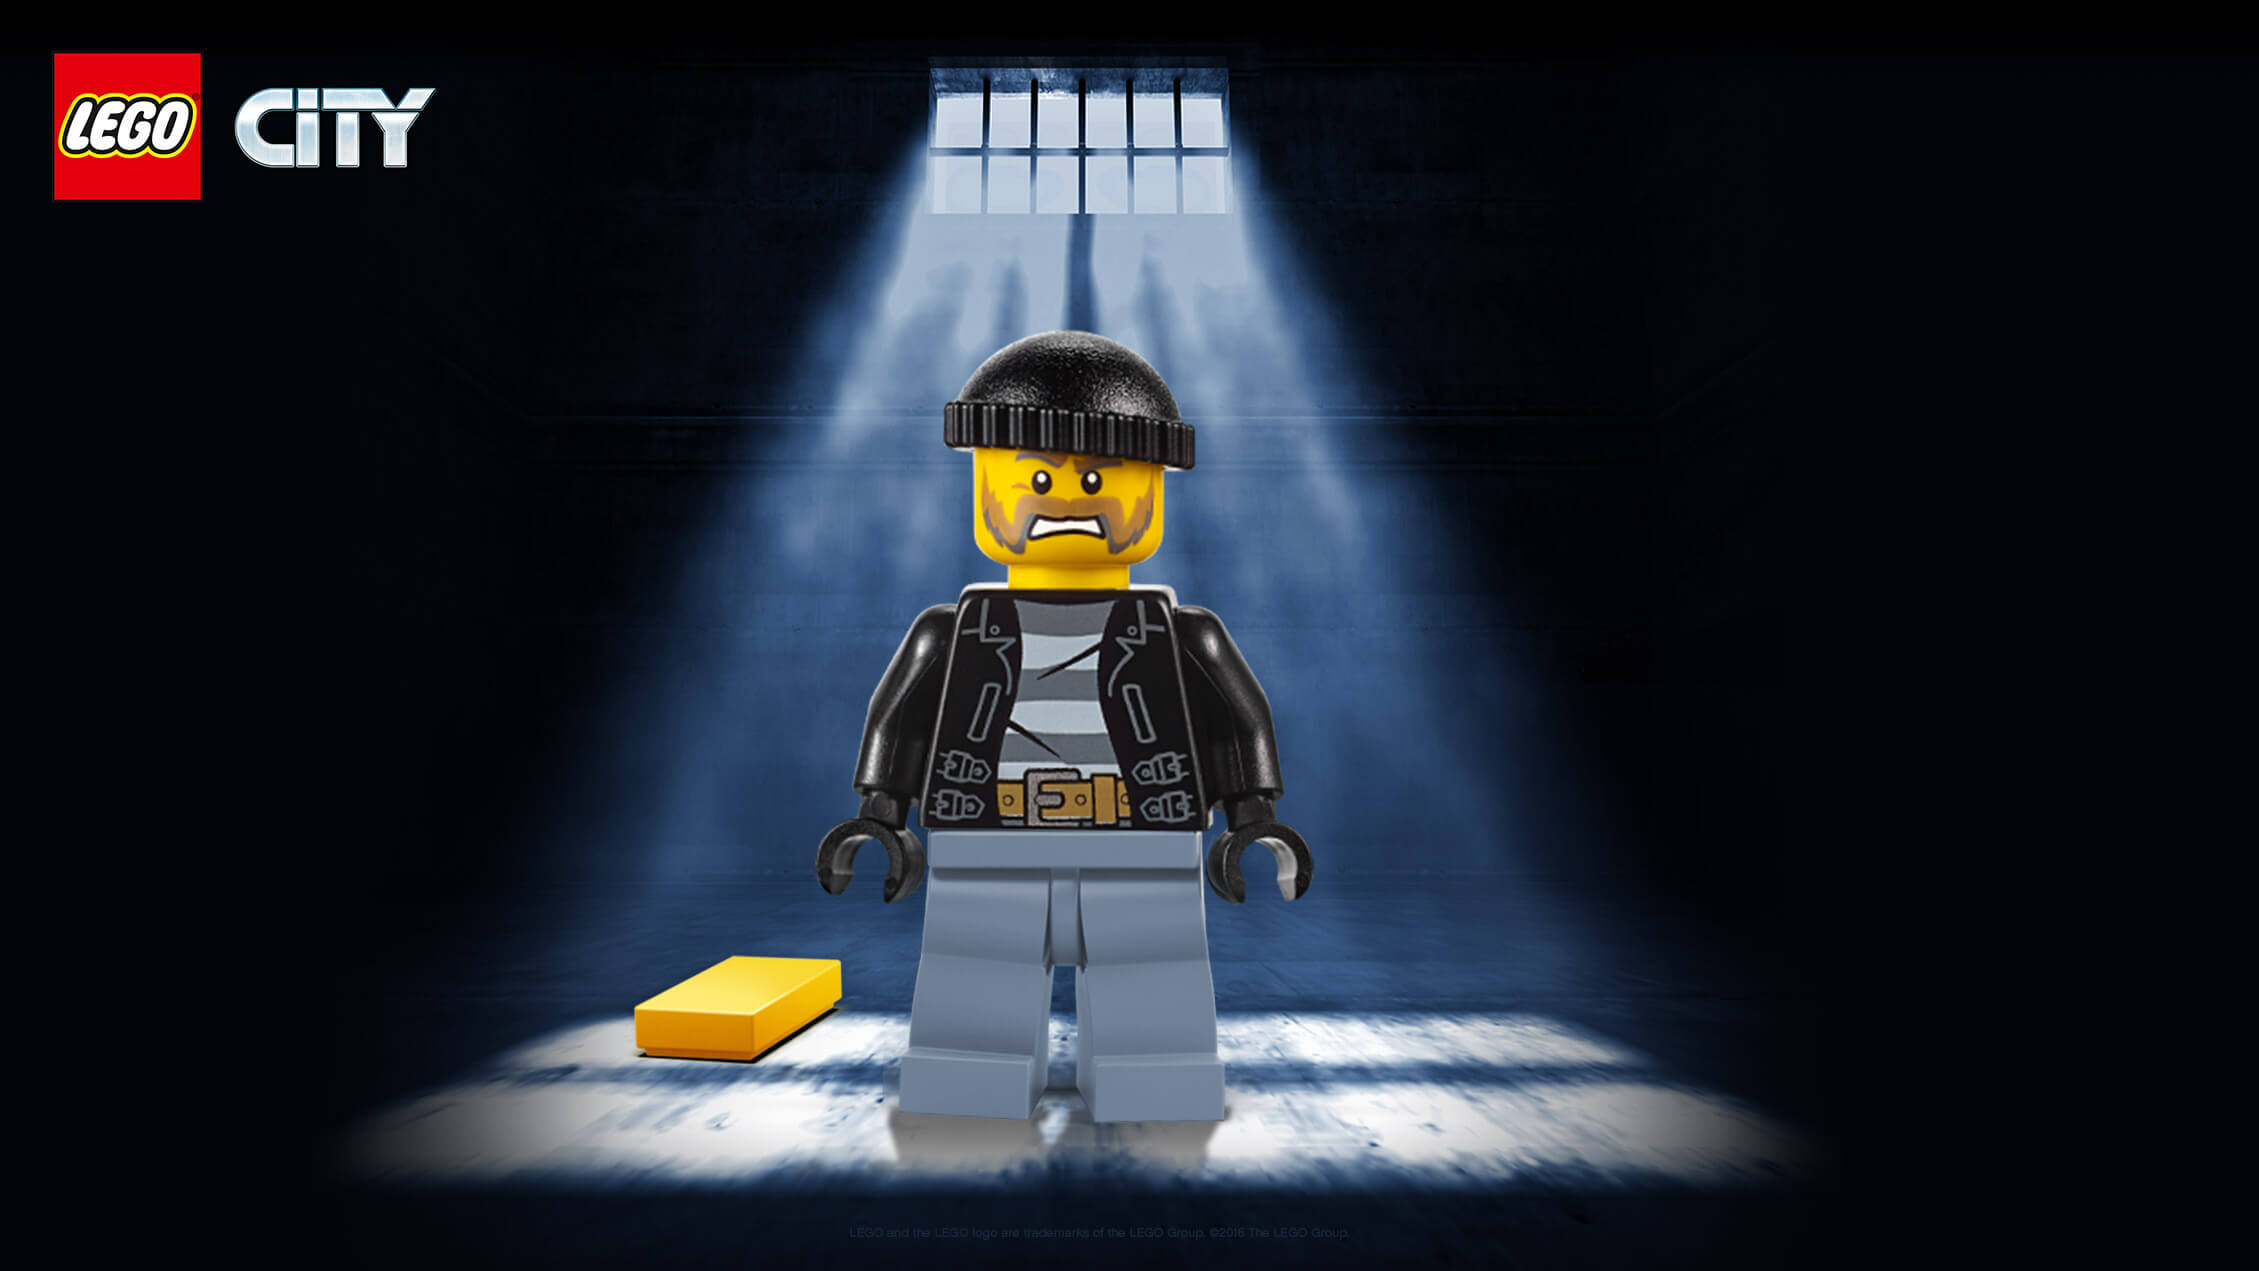 Lego Police Wallpaper Labzada City Prison Island Wallpapers On Wallpaperplay Source Images Of Calto